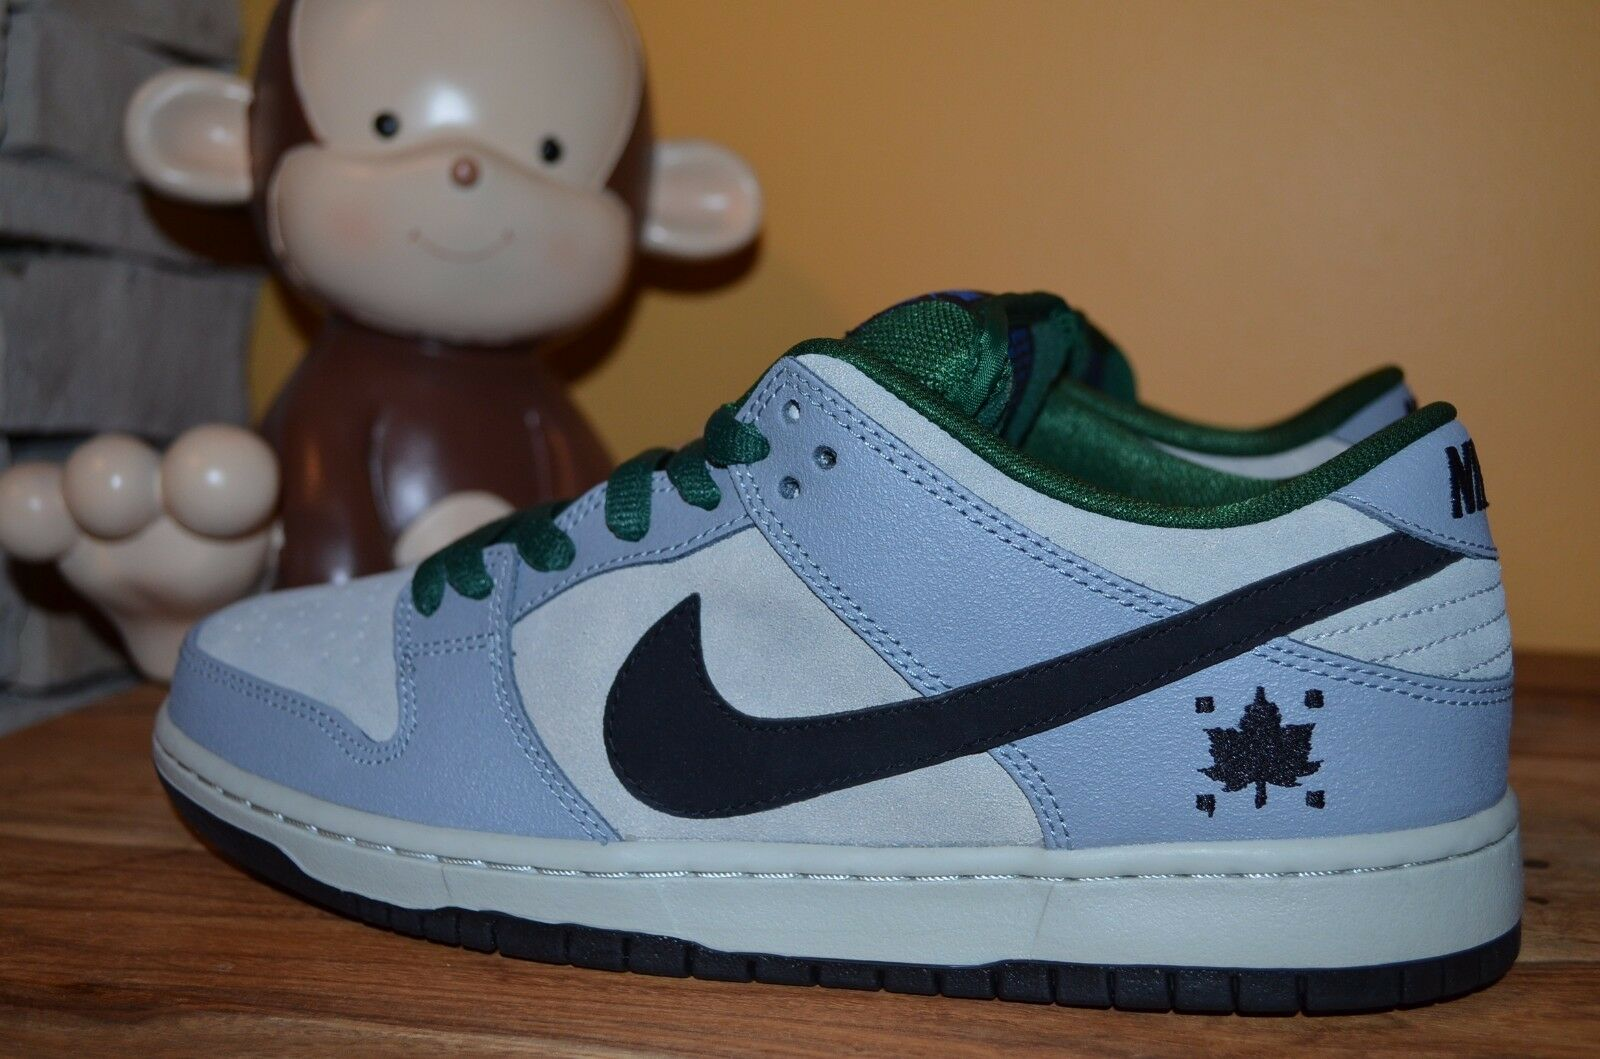 NEW NIKE DUNK LOW PREMIUM SB Maple Leaf SZ 11 Dove Grey/Gorge Green 313170-021